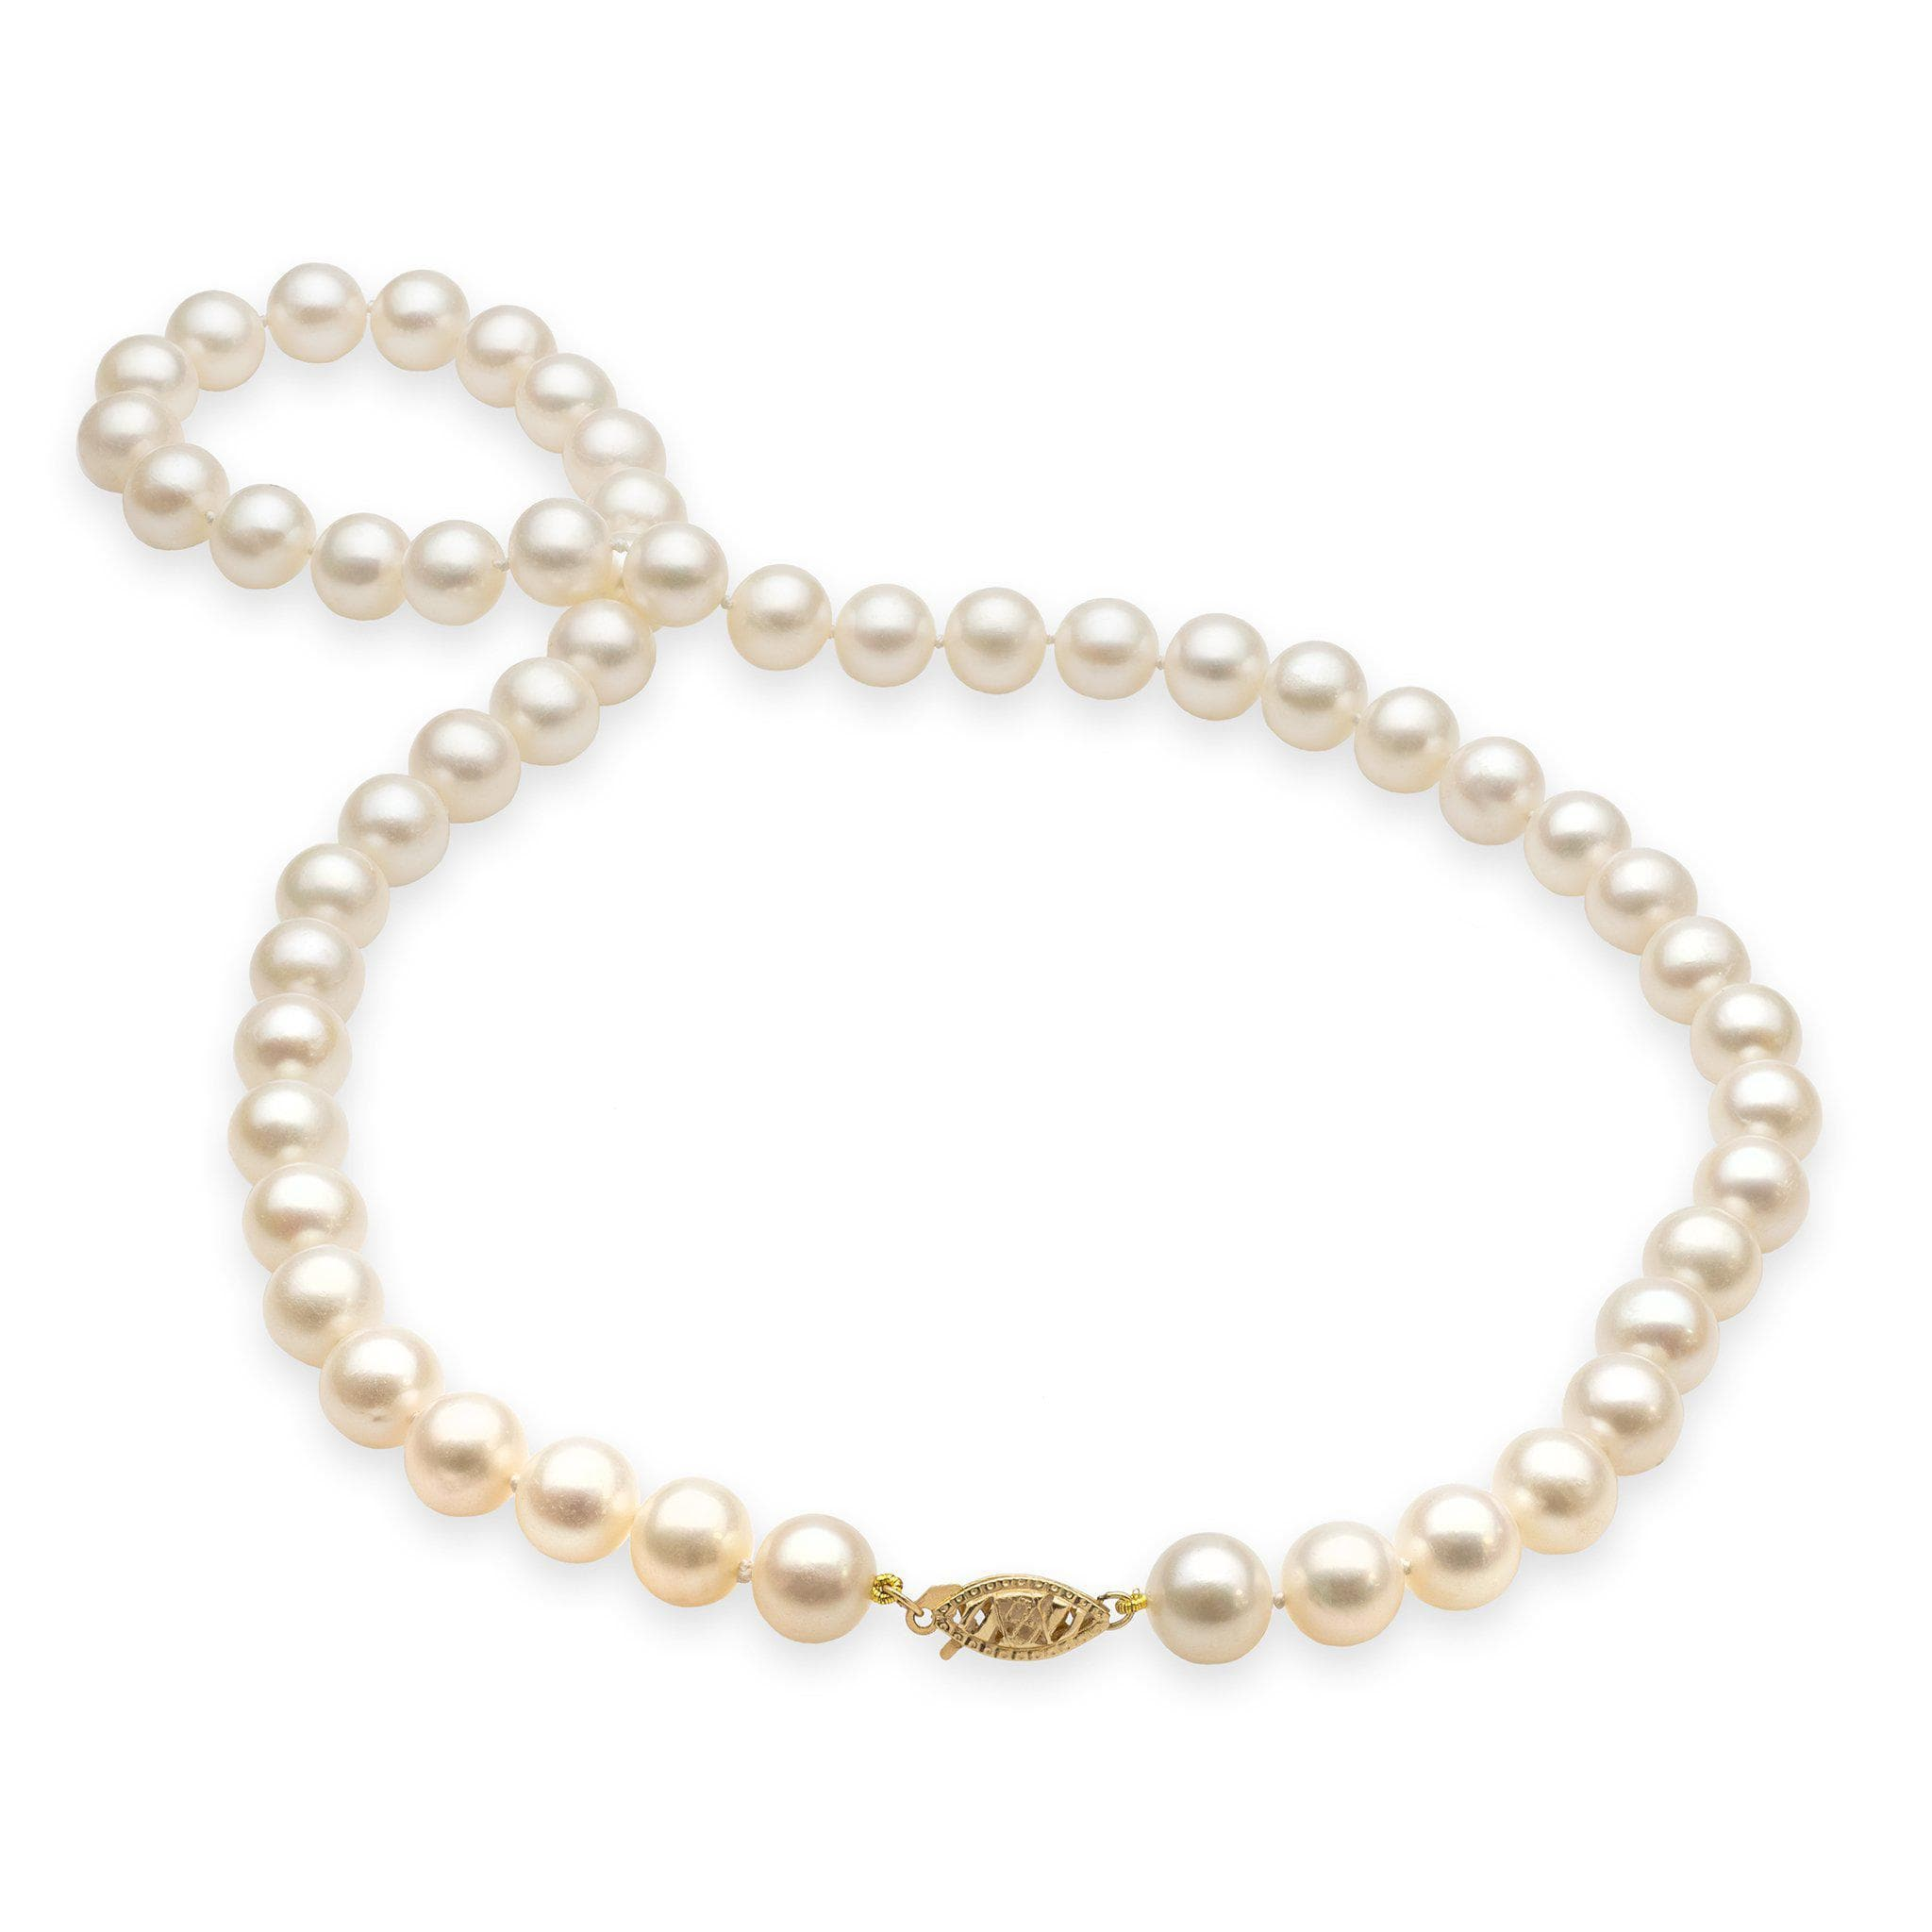 pearl necklace shipping free pearls tahitian white black overstock jewelry gold davonna today product watches types inch mm